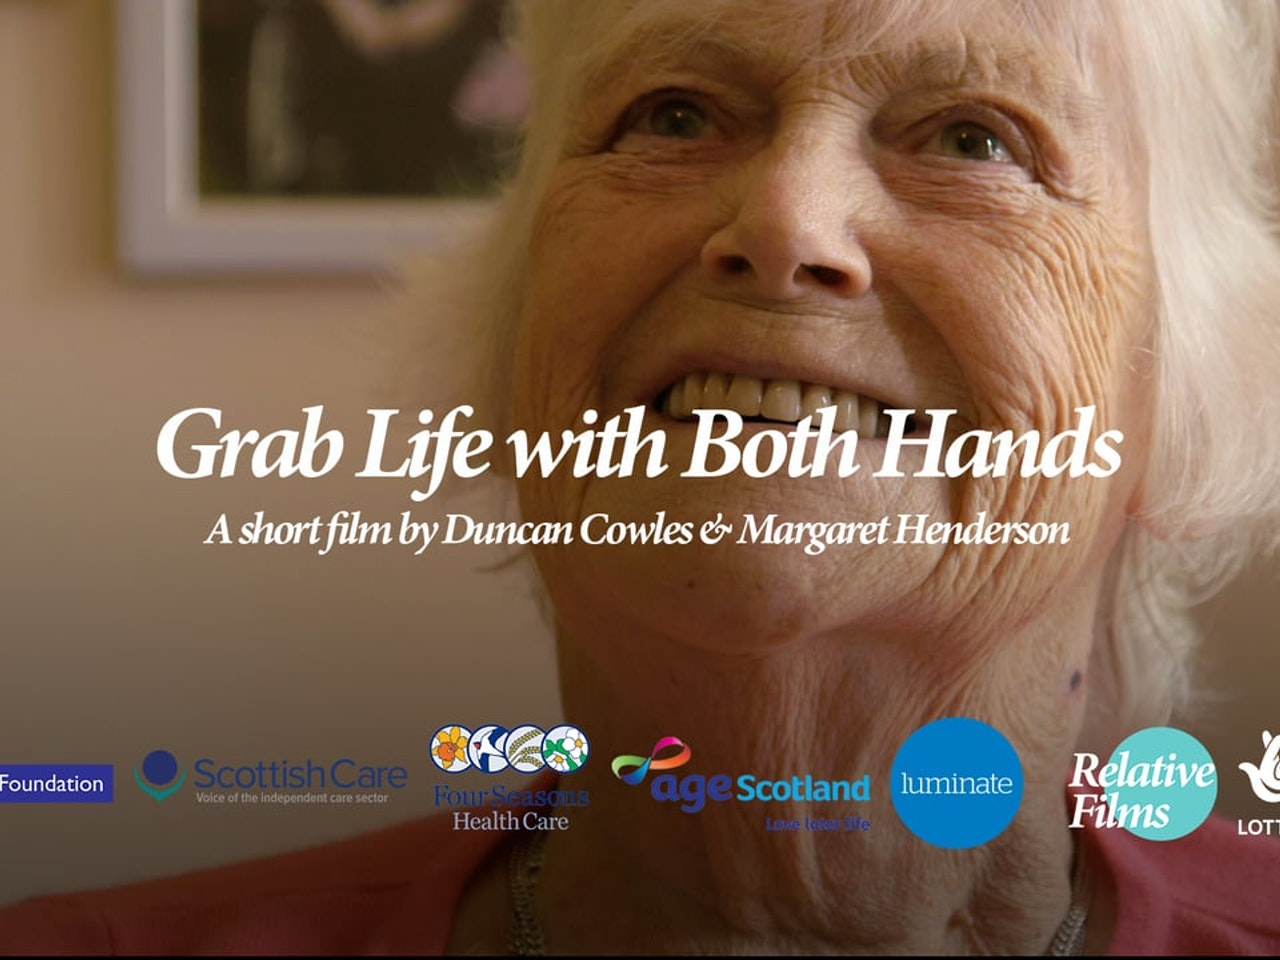 Grab Life with Both Hands (subtitles: on/off)